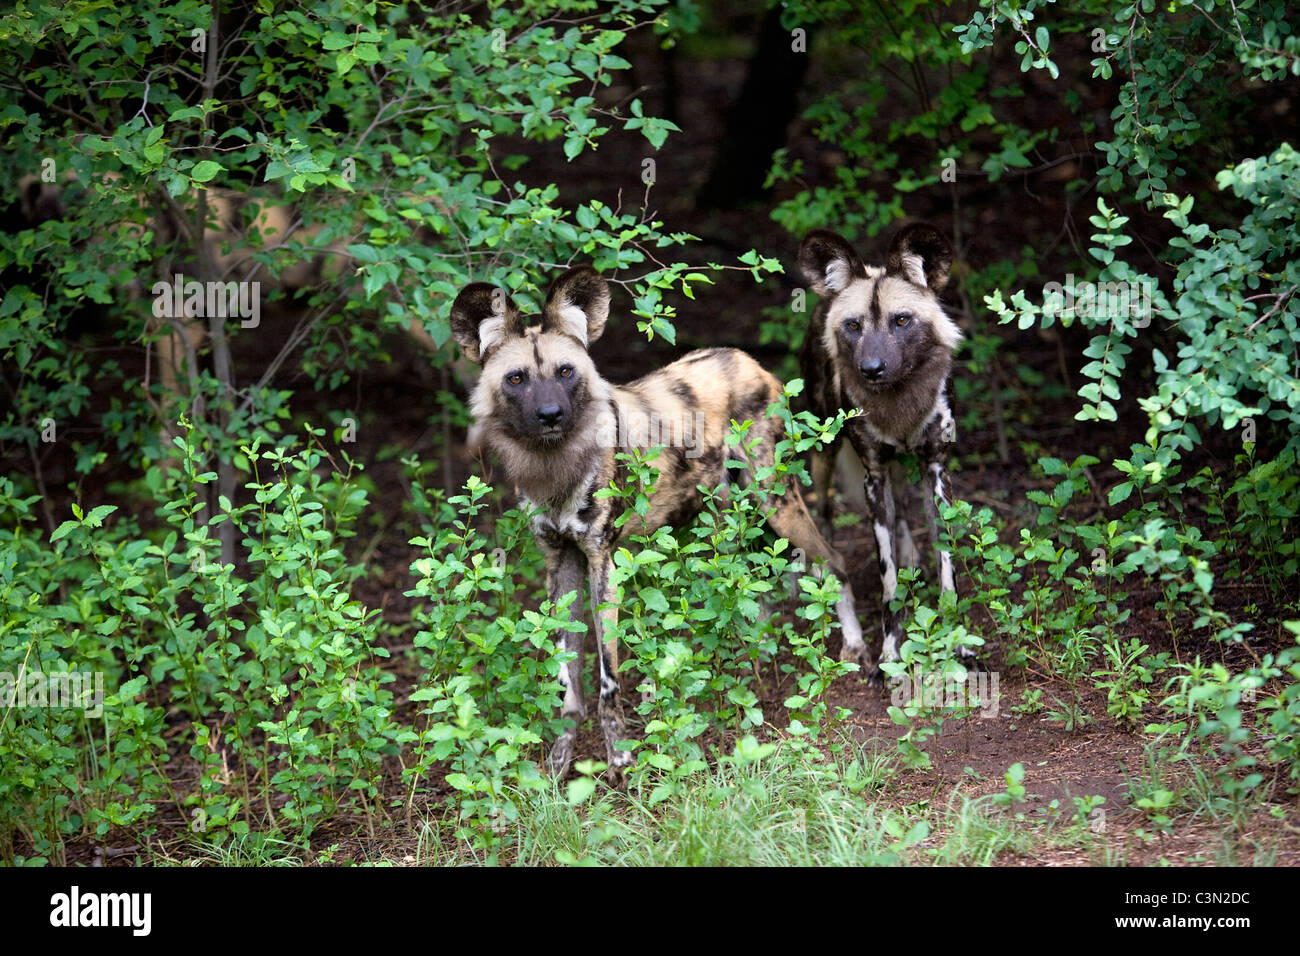 South Africa, Pretoria. Two African Wild Dog, also Painted Hunting Dog, Lycaon pictus. Captivity. - Stock Image